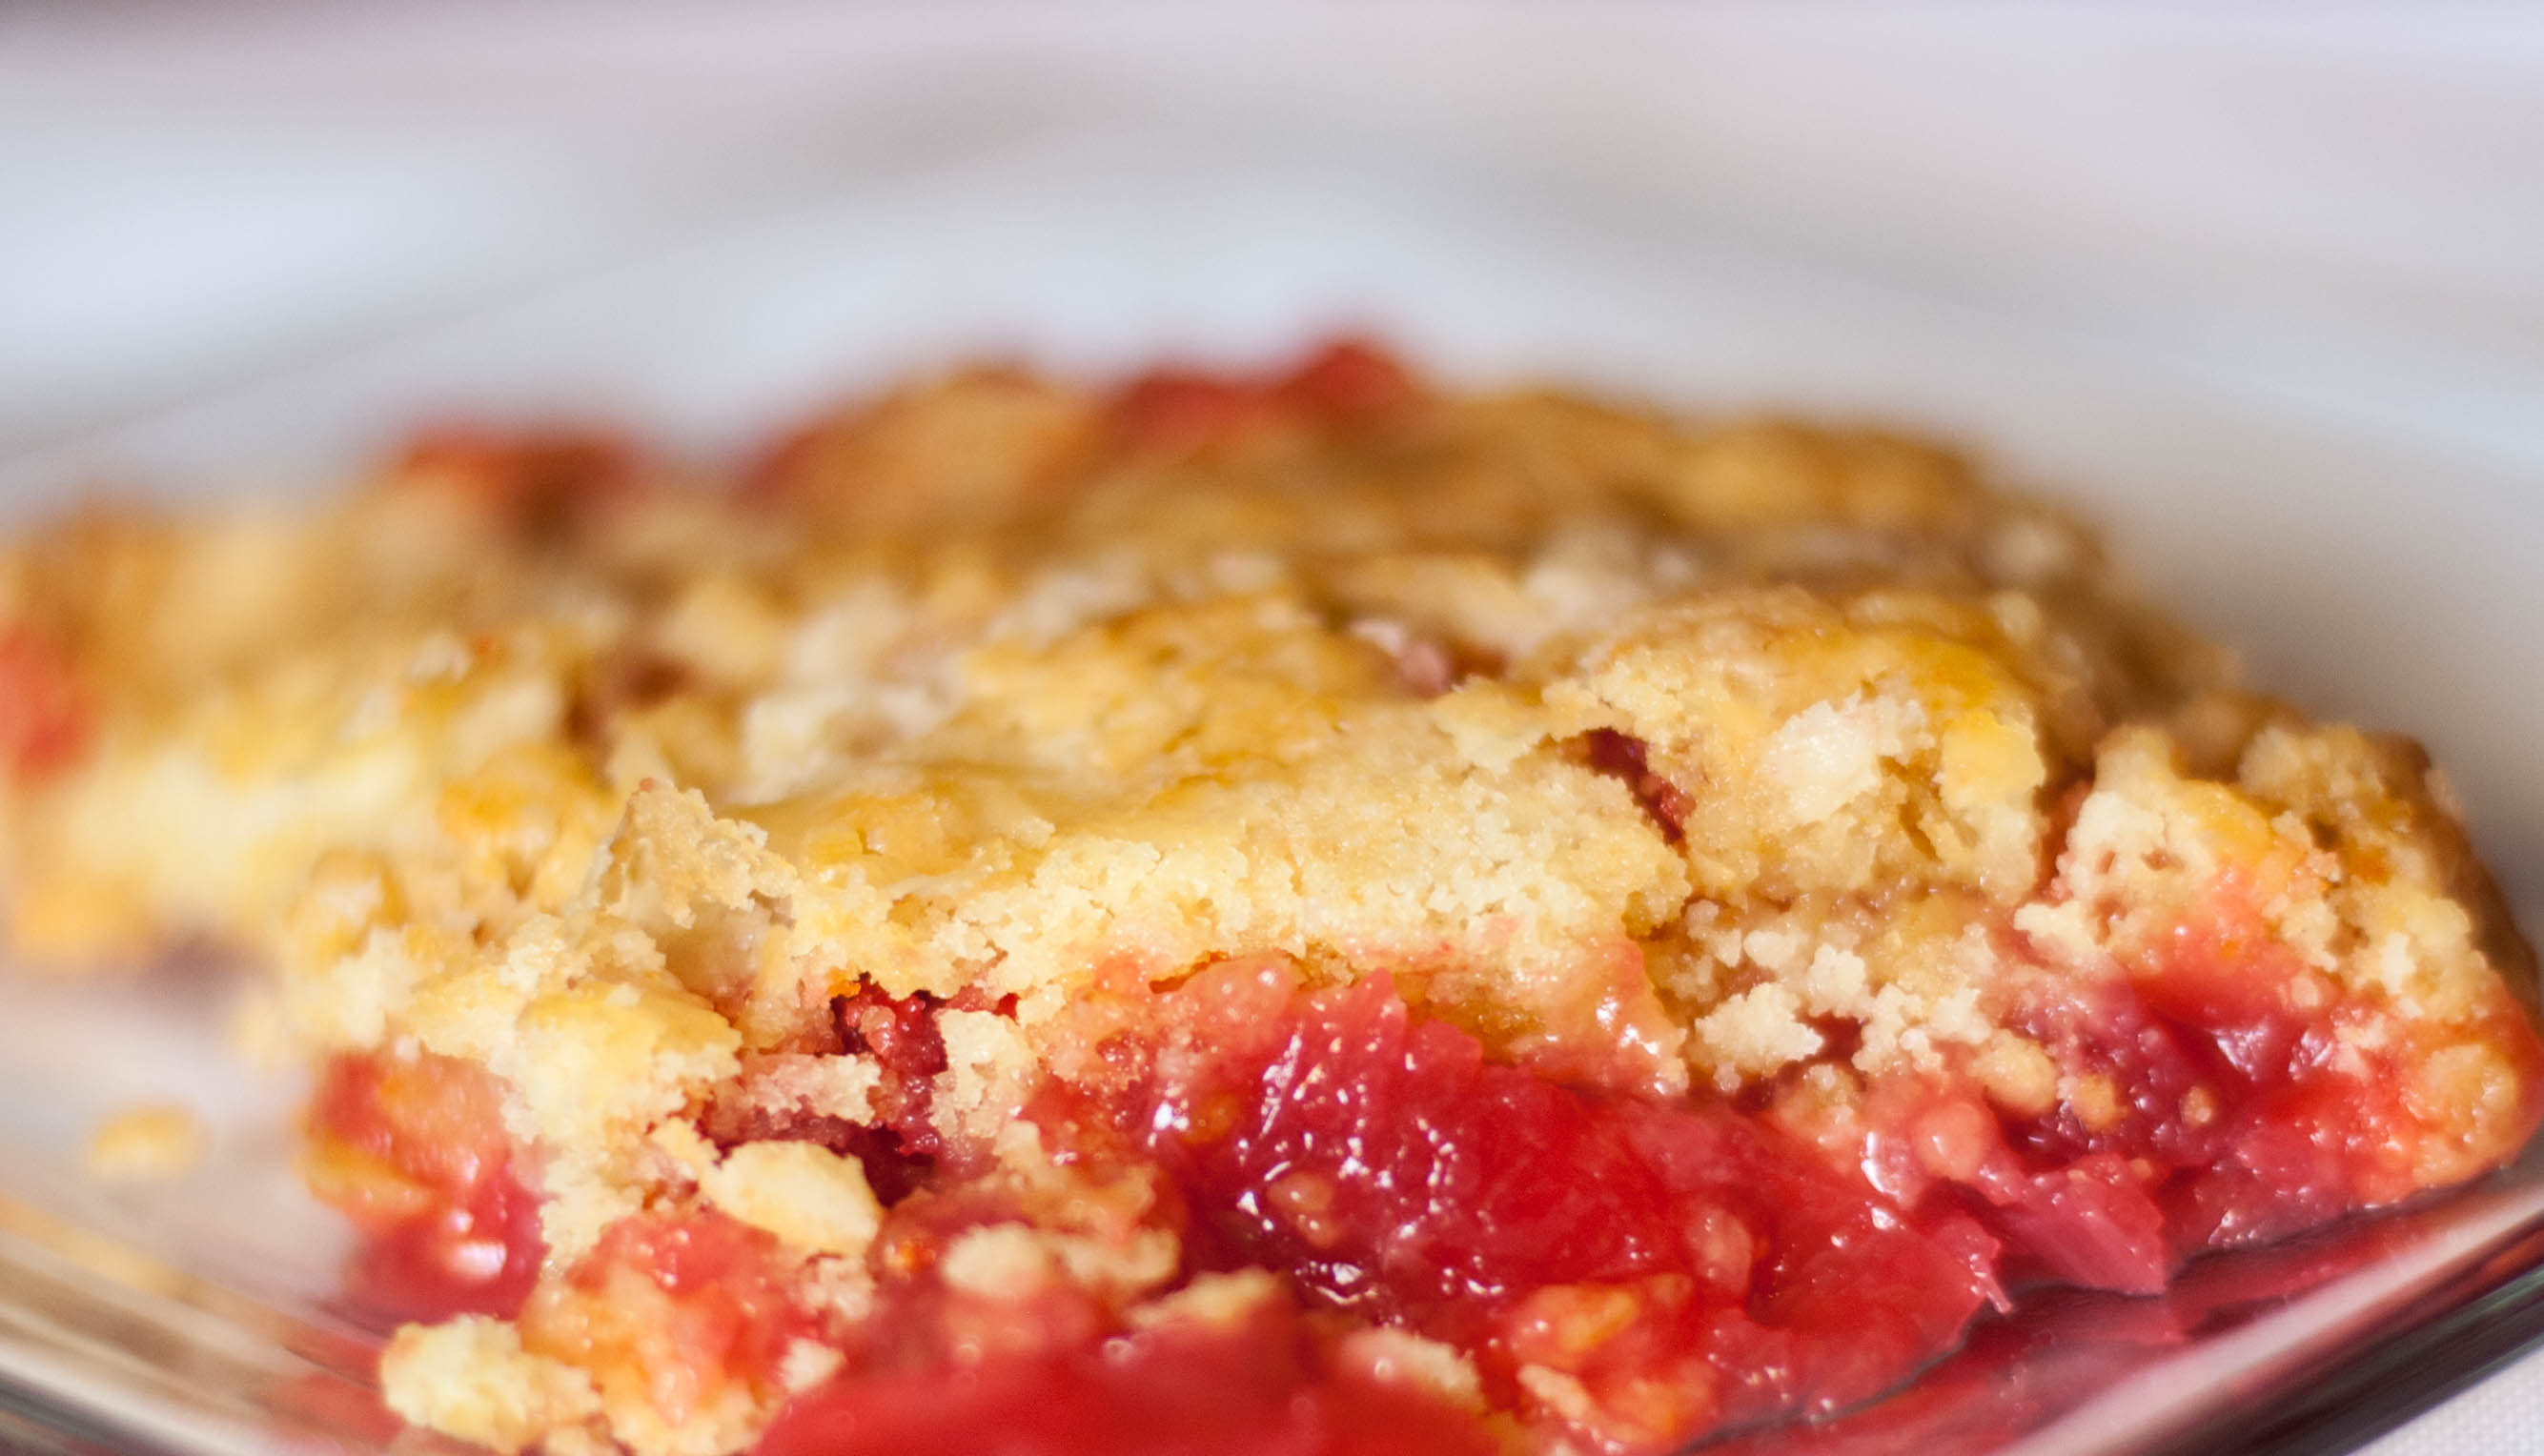 Rhubarb And Strawberry Cake Recipe